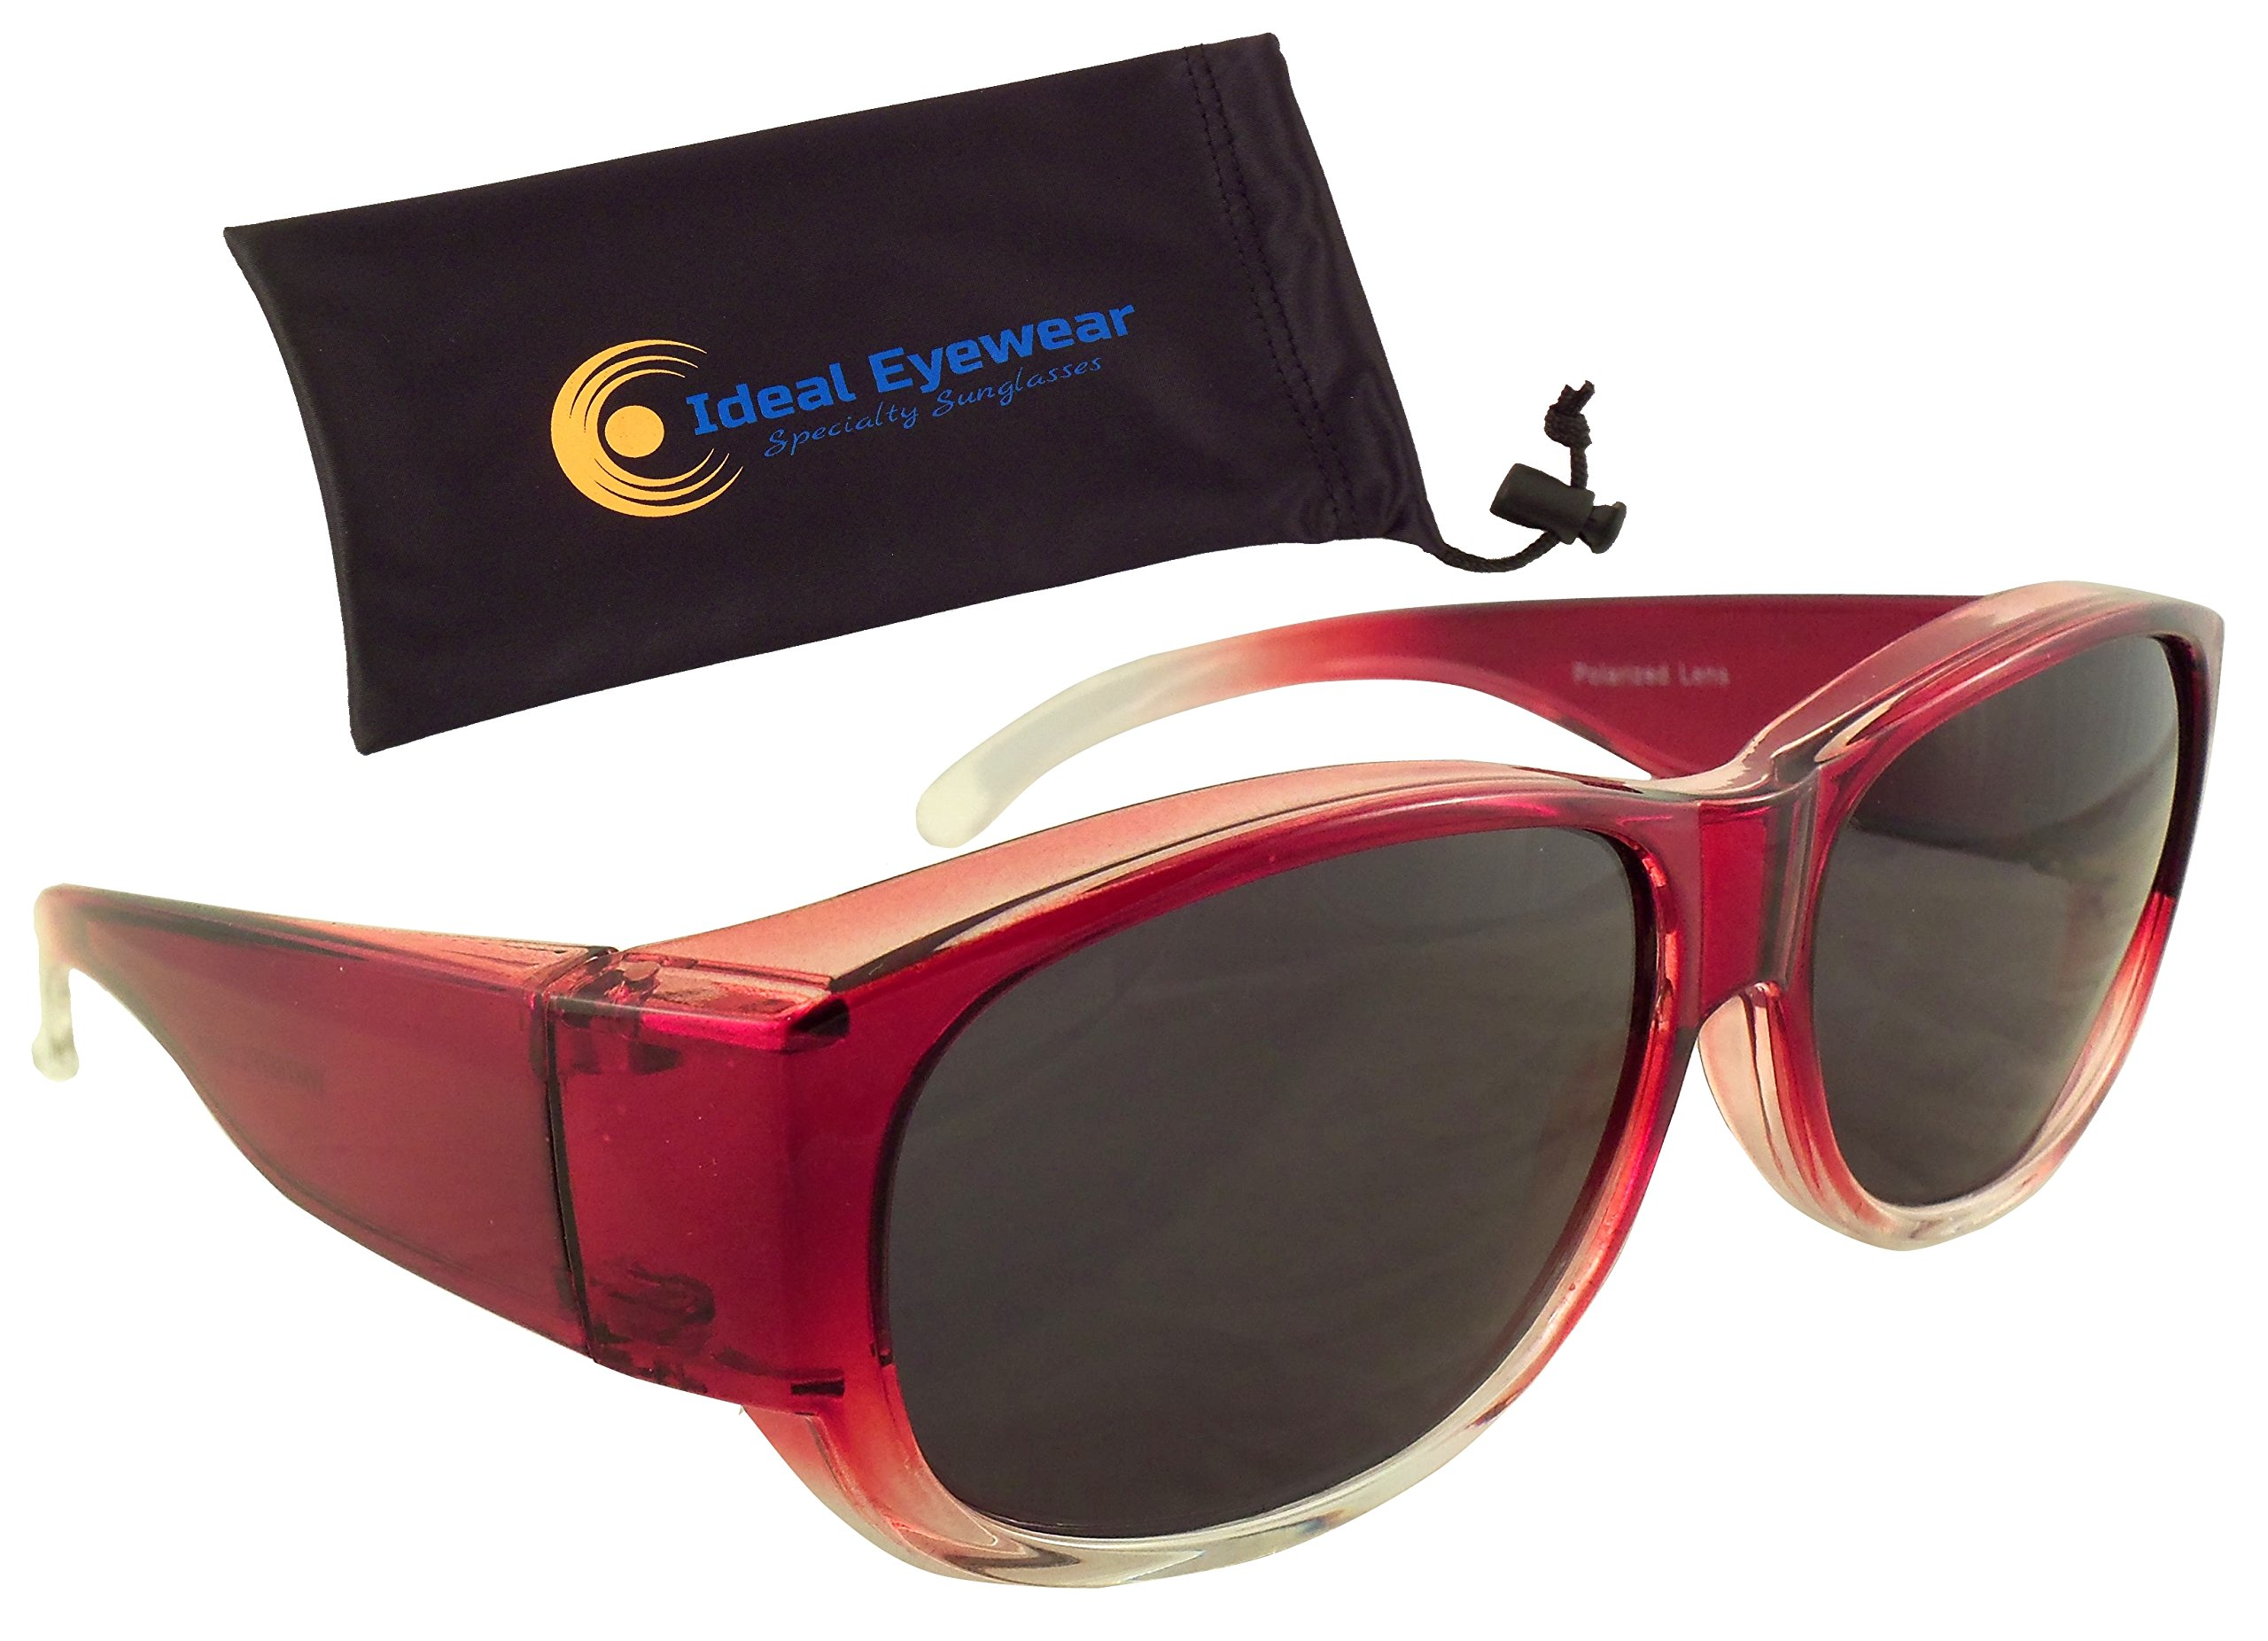 Womens Ombre Fit Over Sunglasses by Ideal Eyewear - Wear Over Prescription Glasses - Over Eyeglasses - Polarized Lenses - Light and Comfortable - Case Included (Red with case, Polarized)